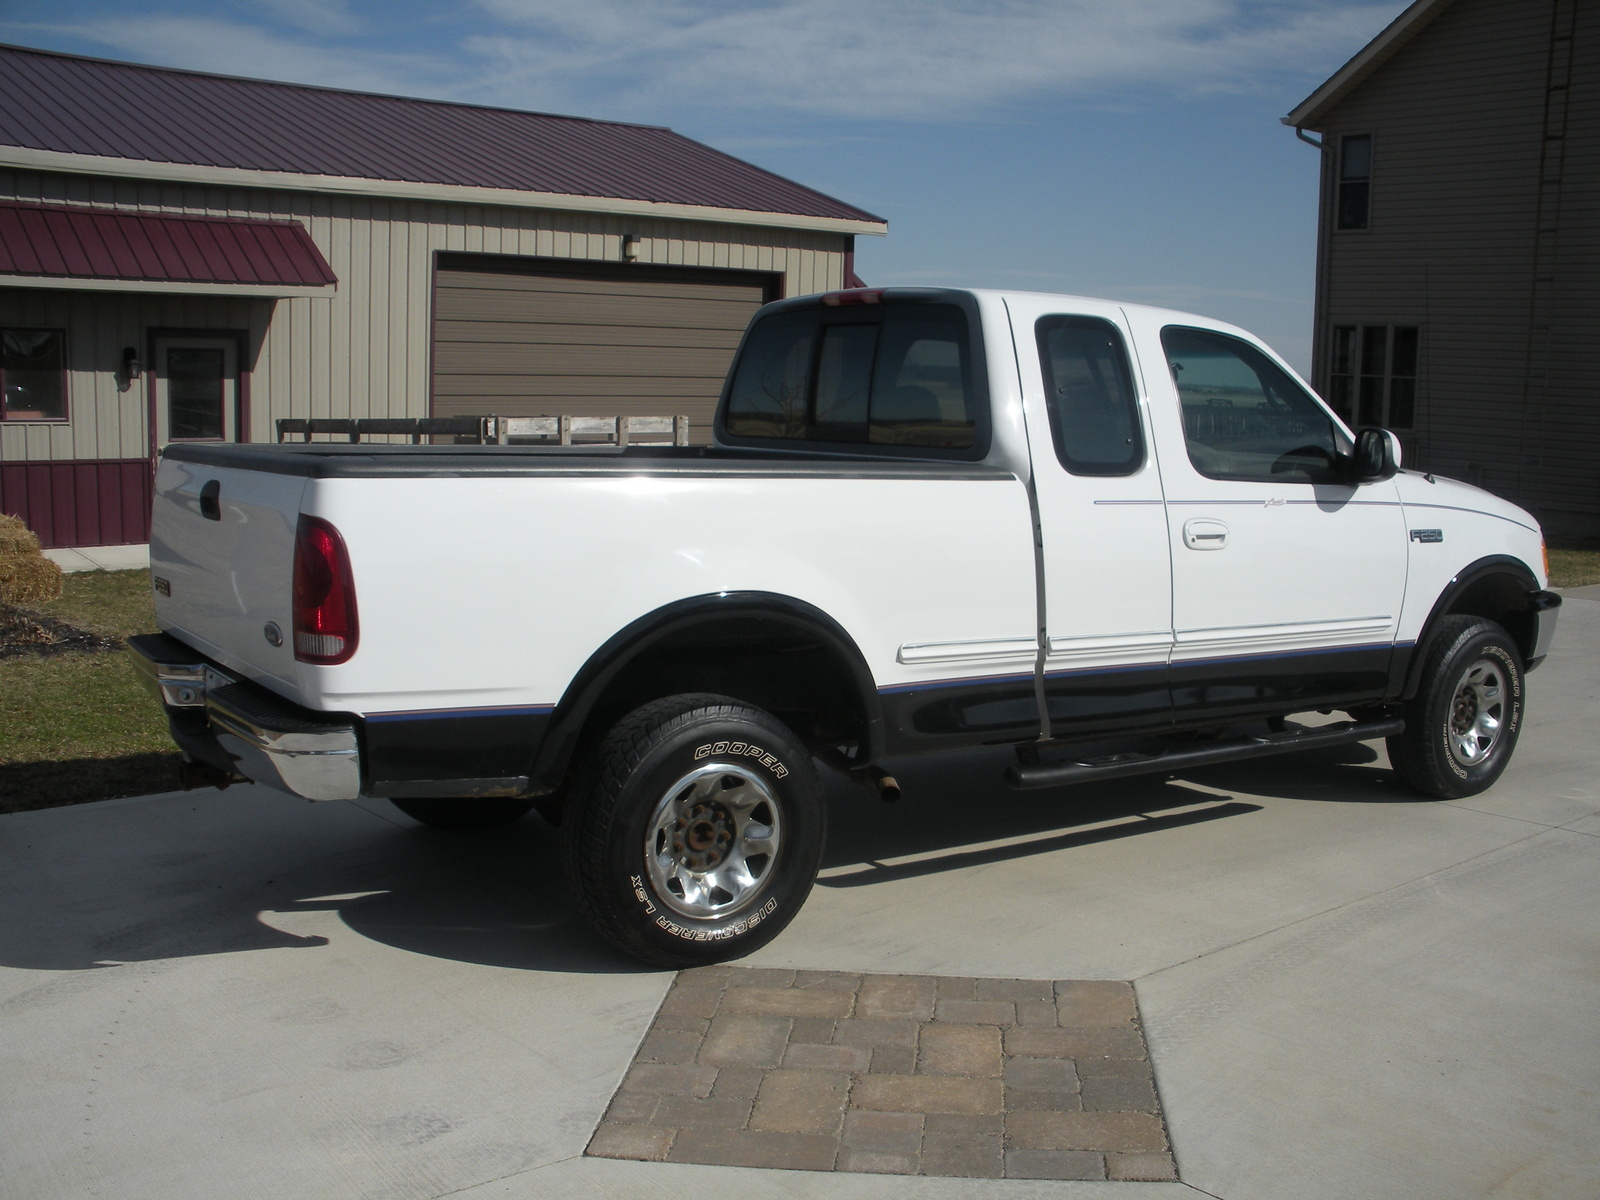 1997 Ford F-250 - Pictures